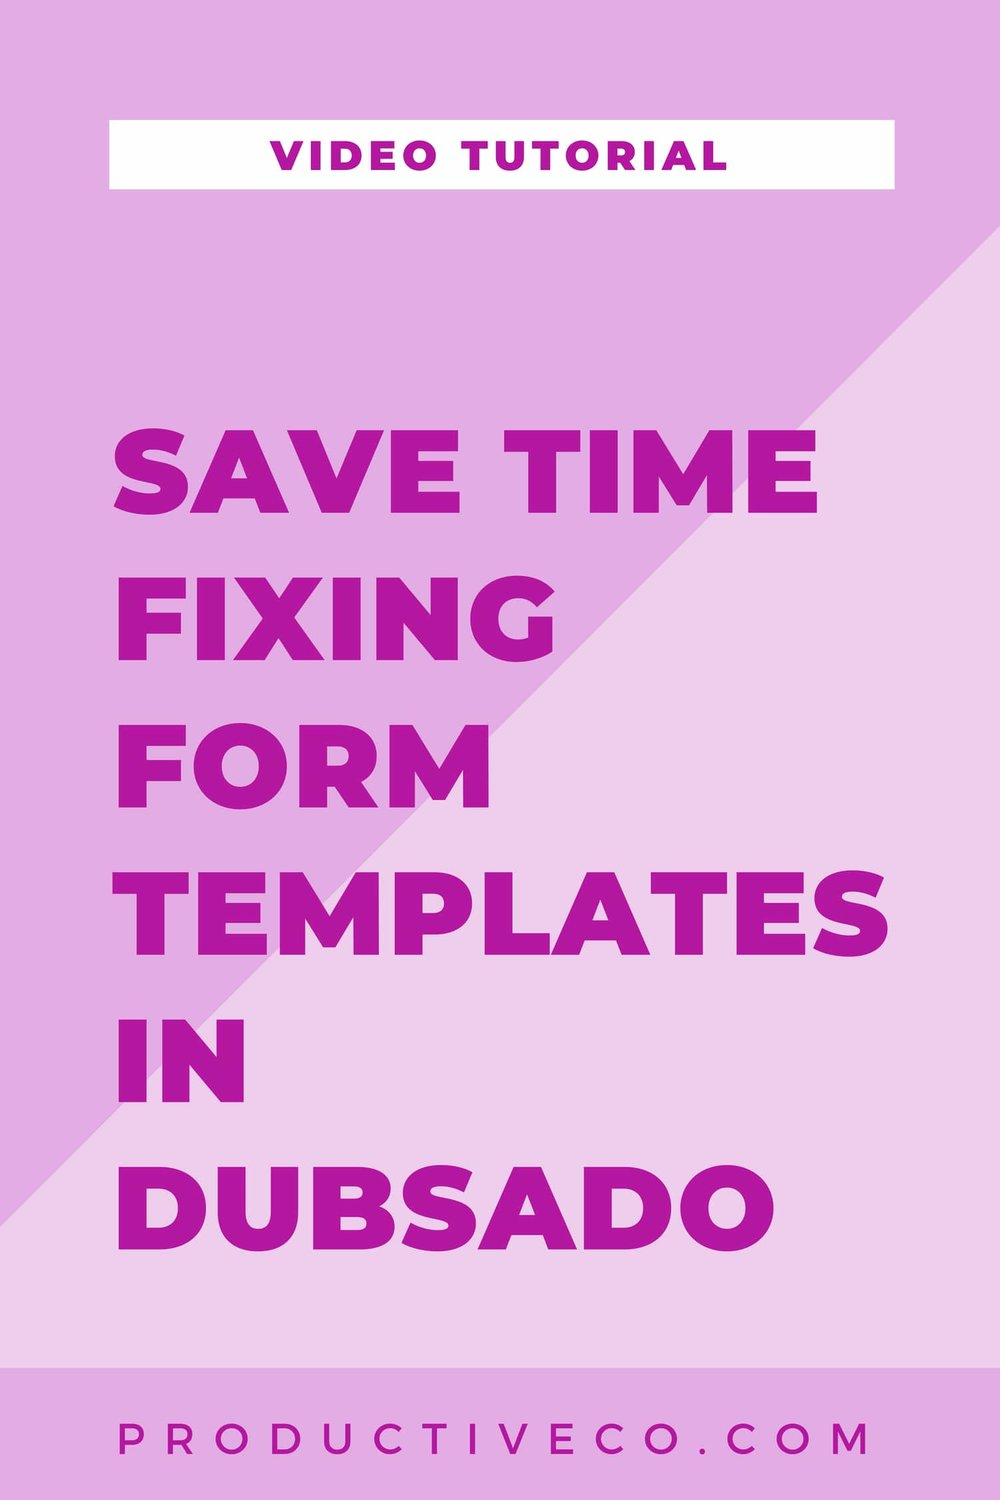 Save Time Fixing Form Templates In Dubsado Productive Co